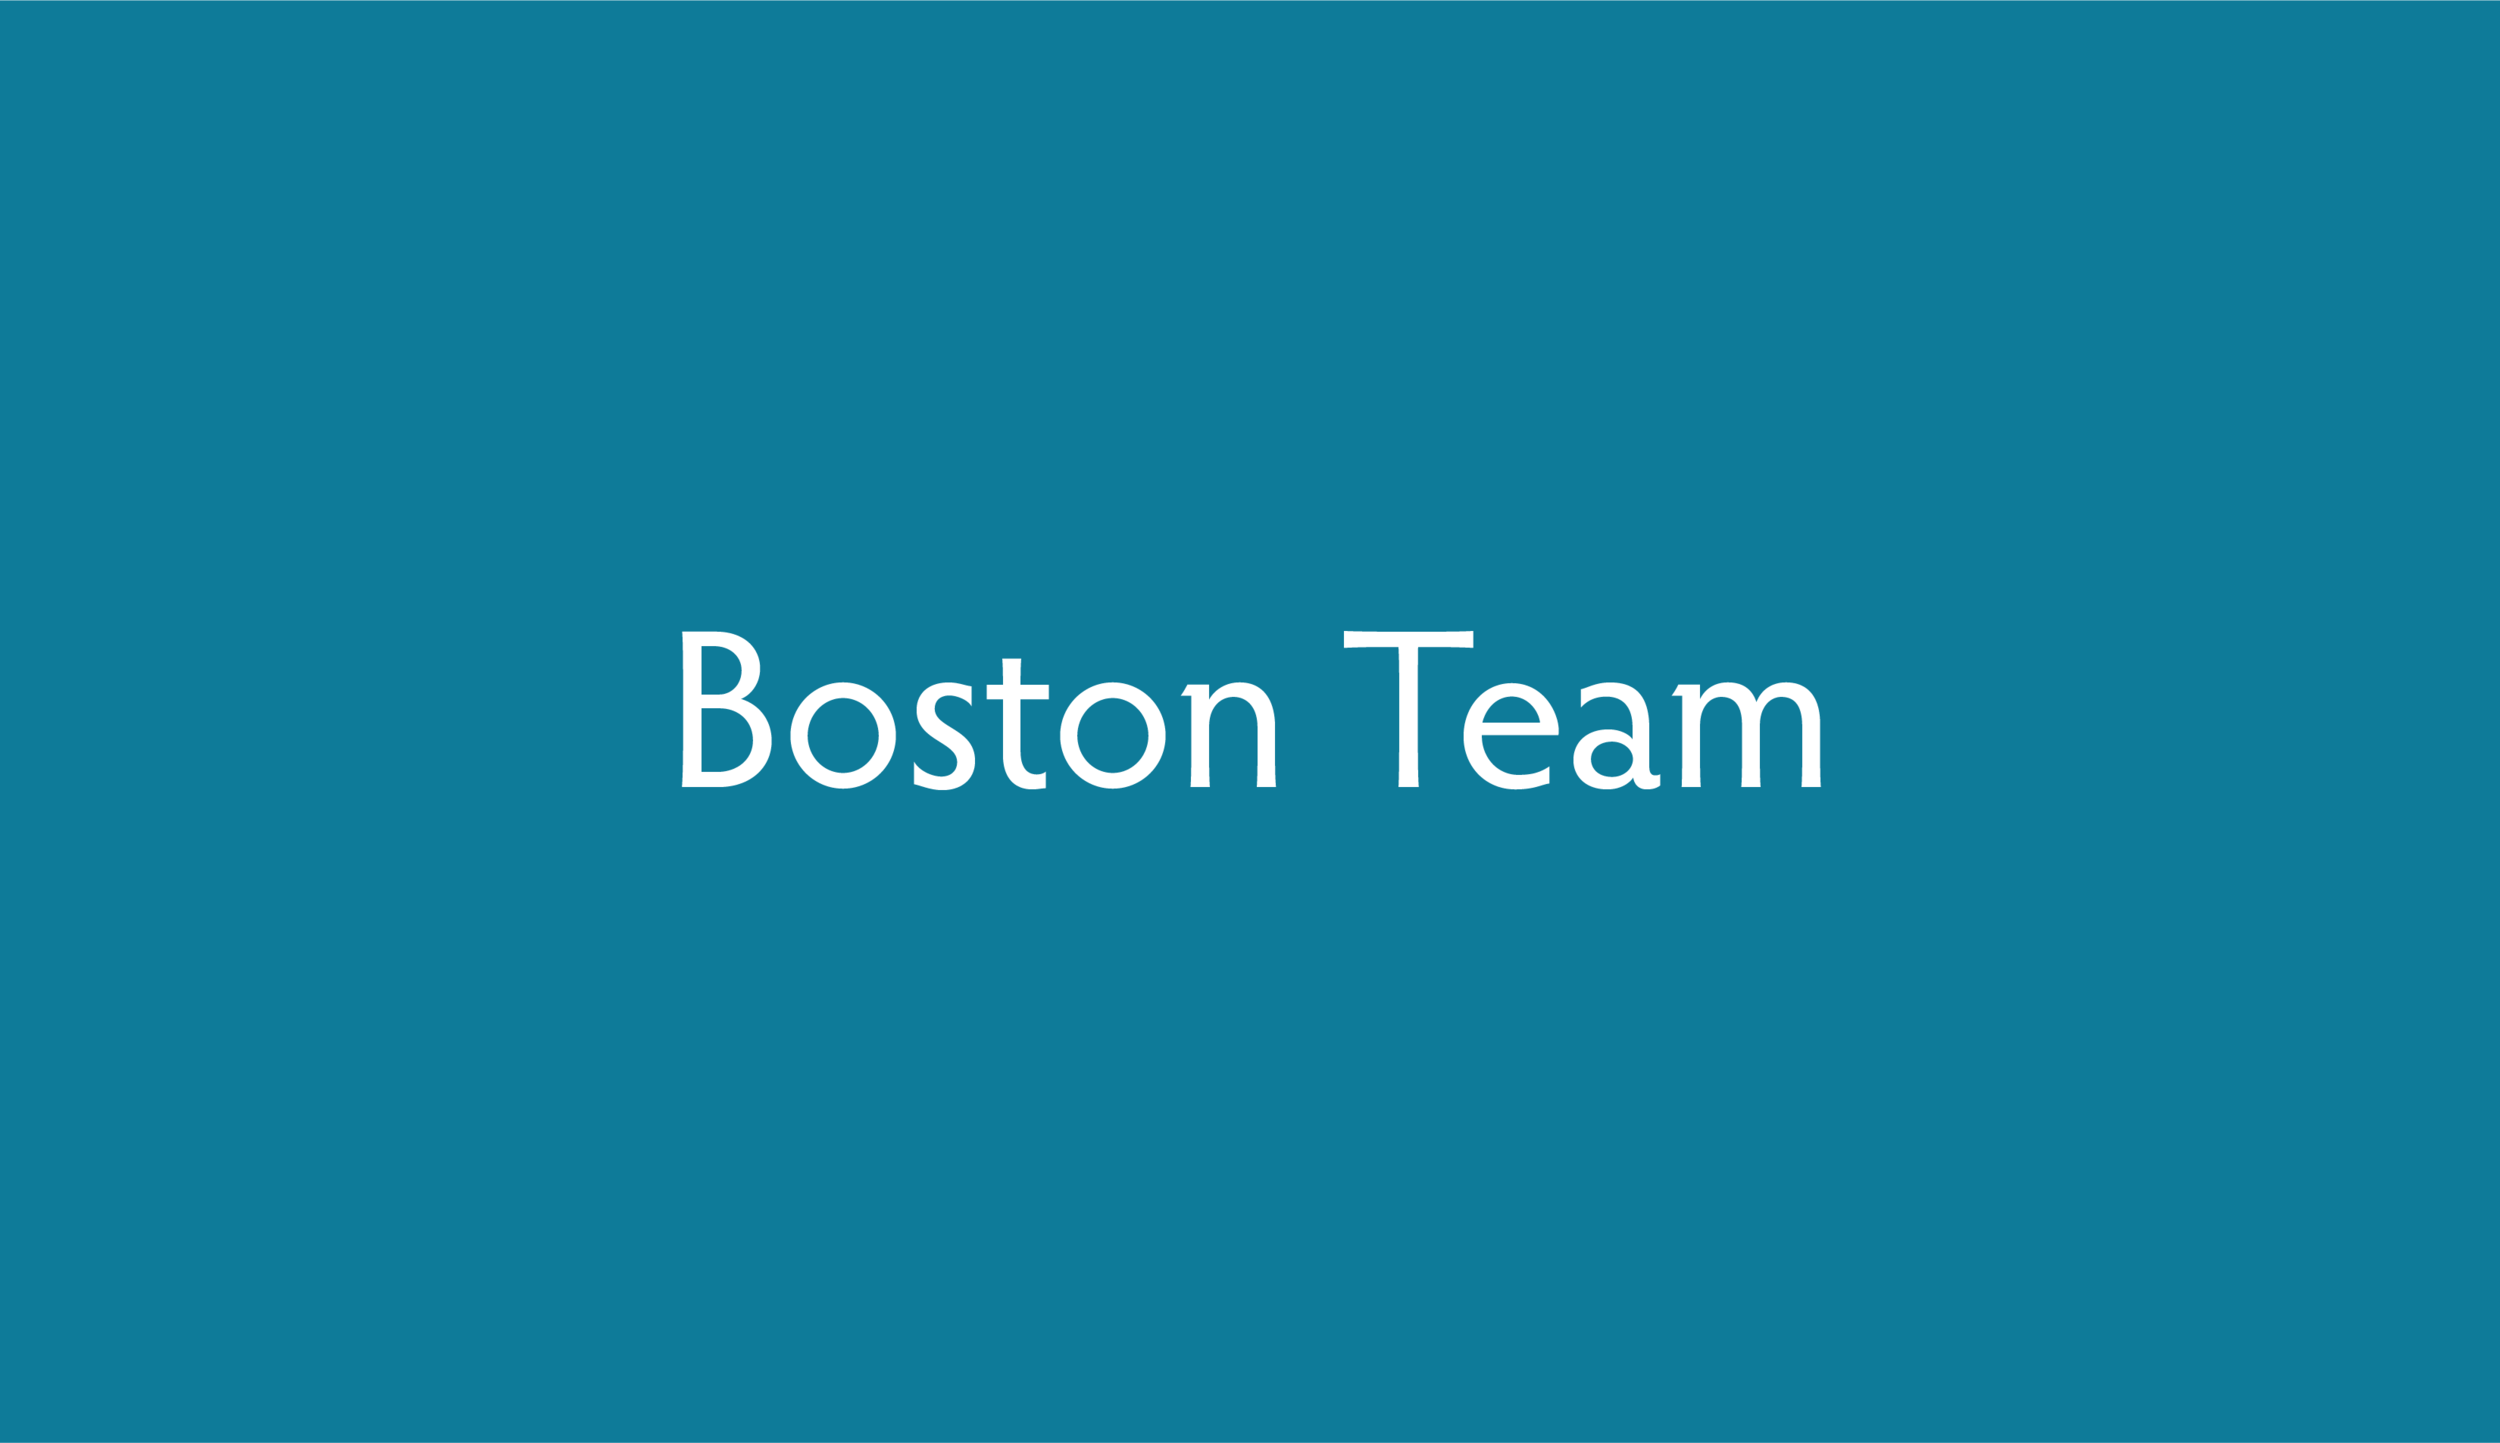 bostonteam.png